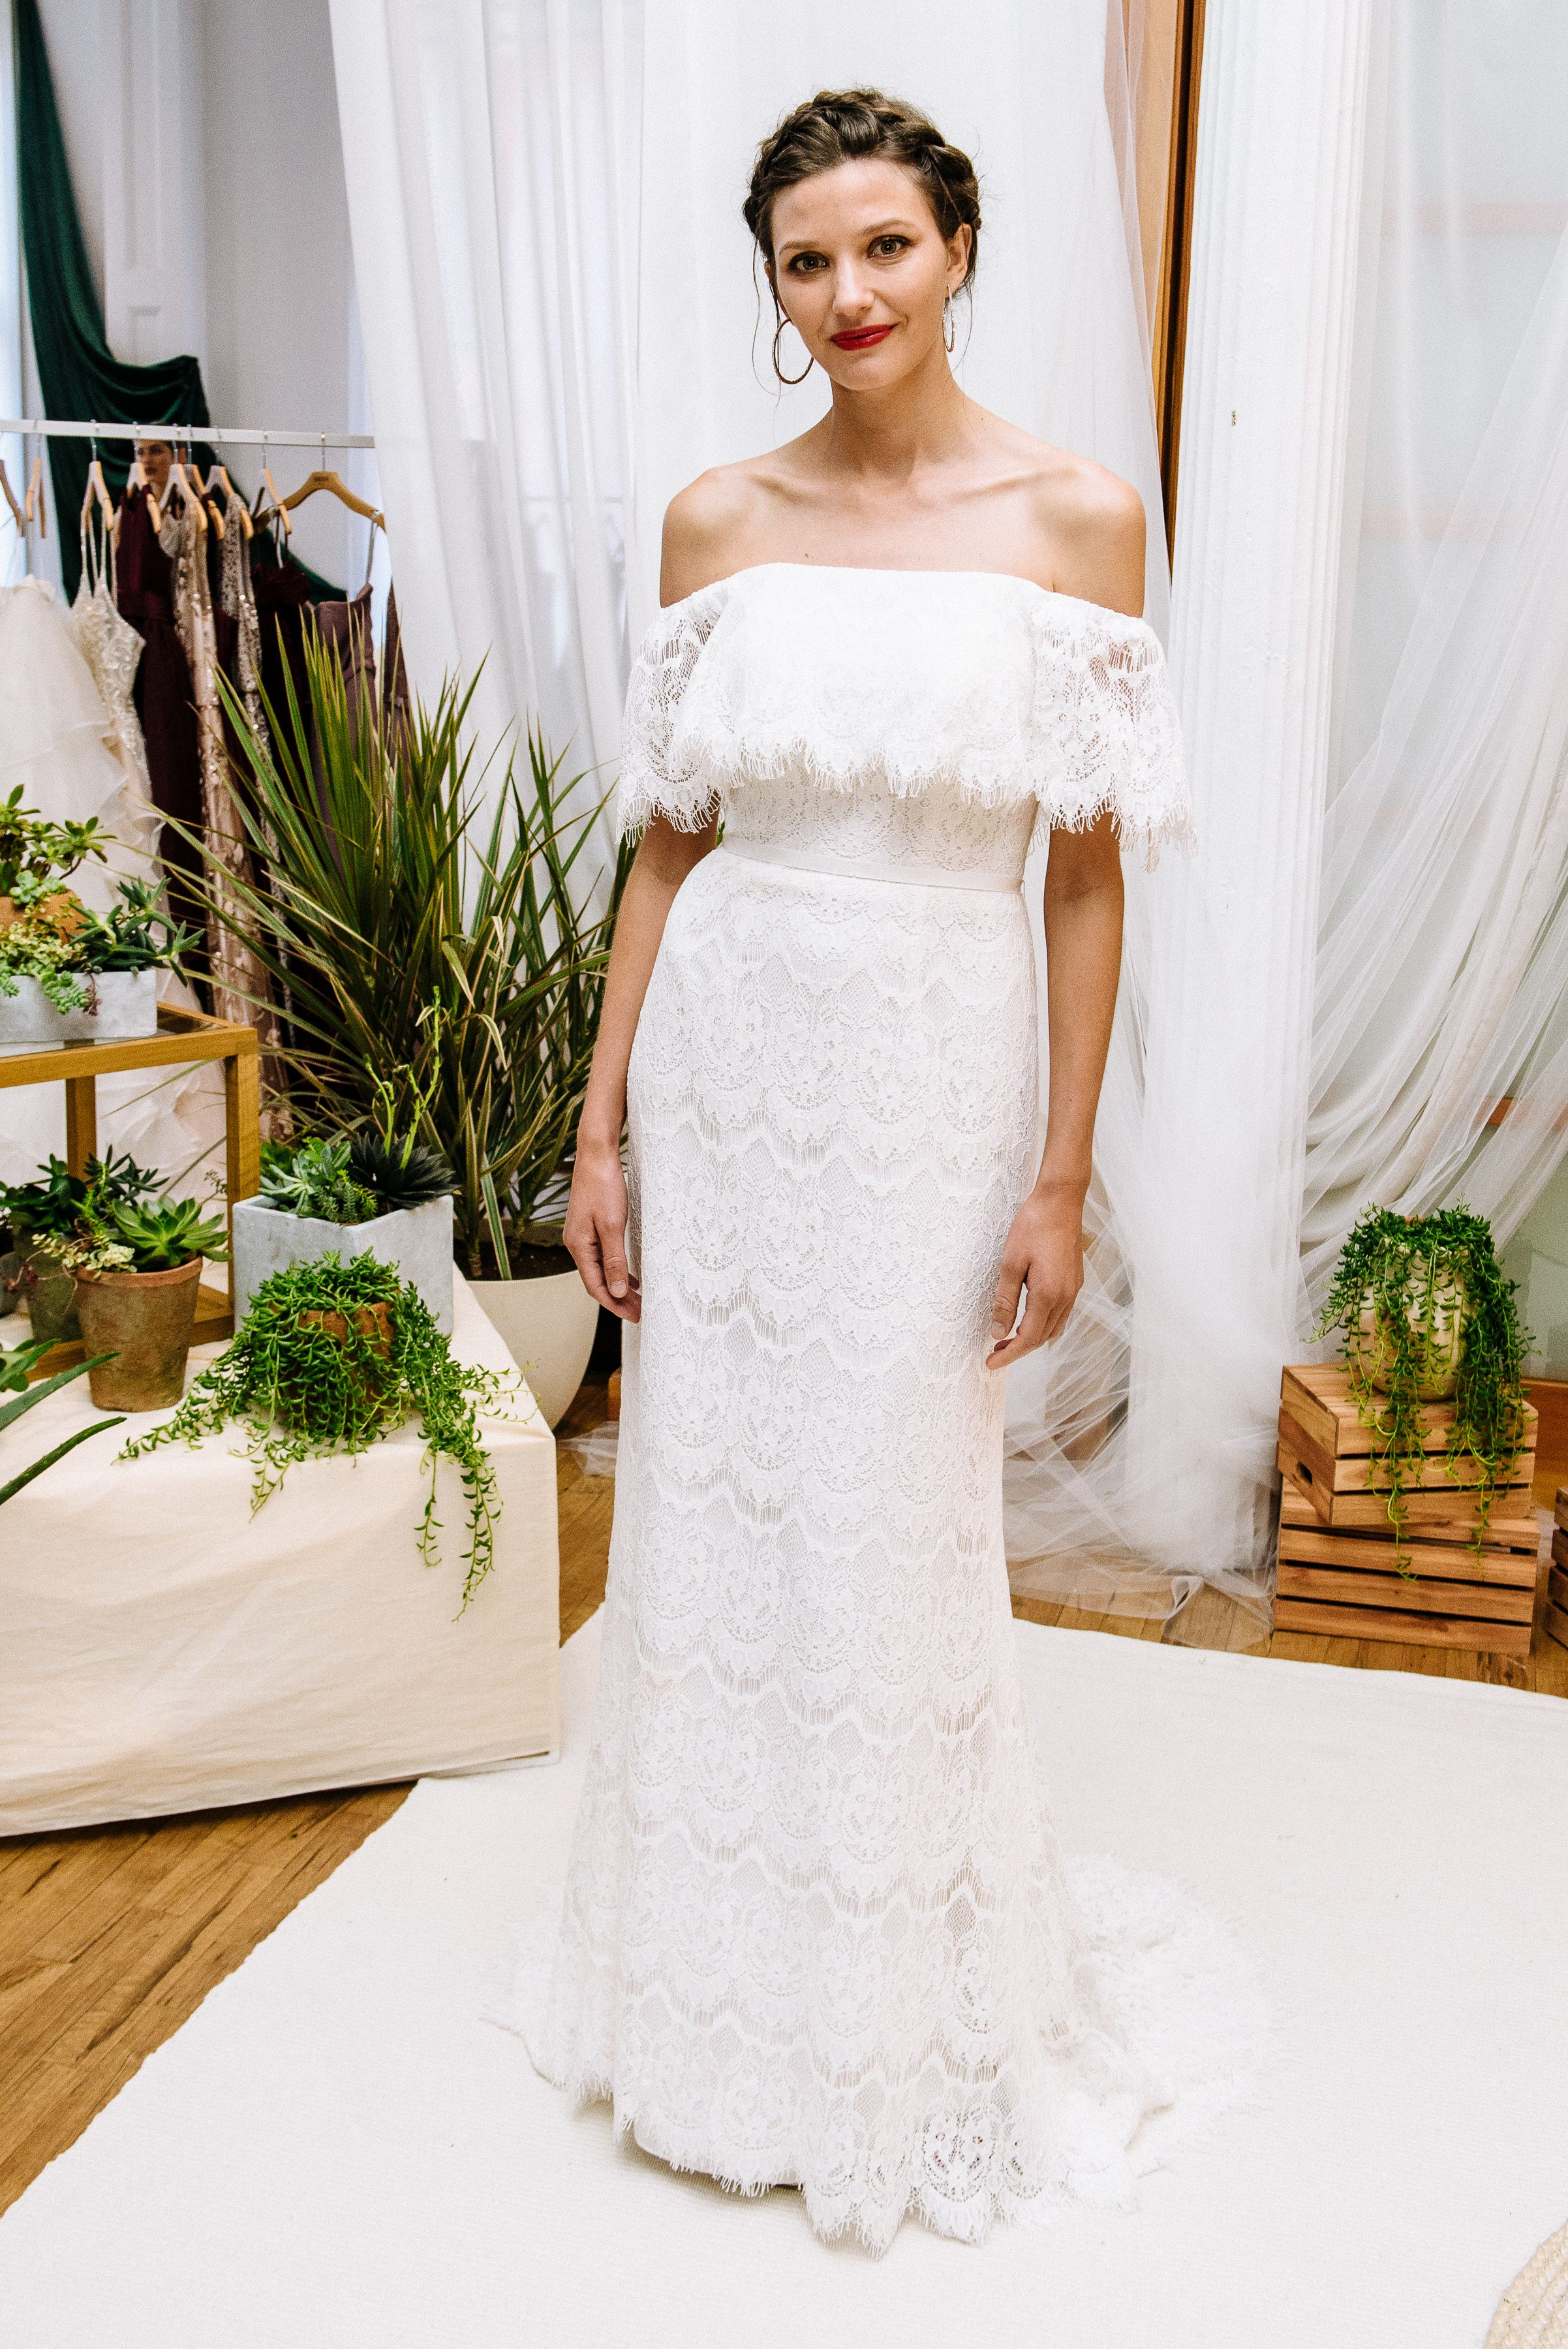 9b2476e232 A lace off the shoulder wedding dress with fringy eyelash lace from the  Galina collection at David s Bridal